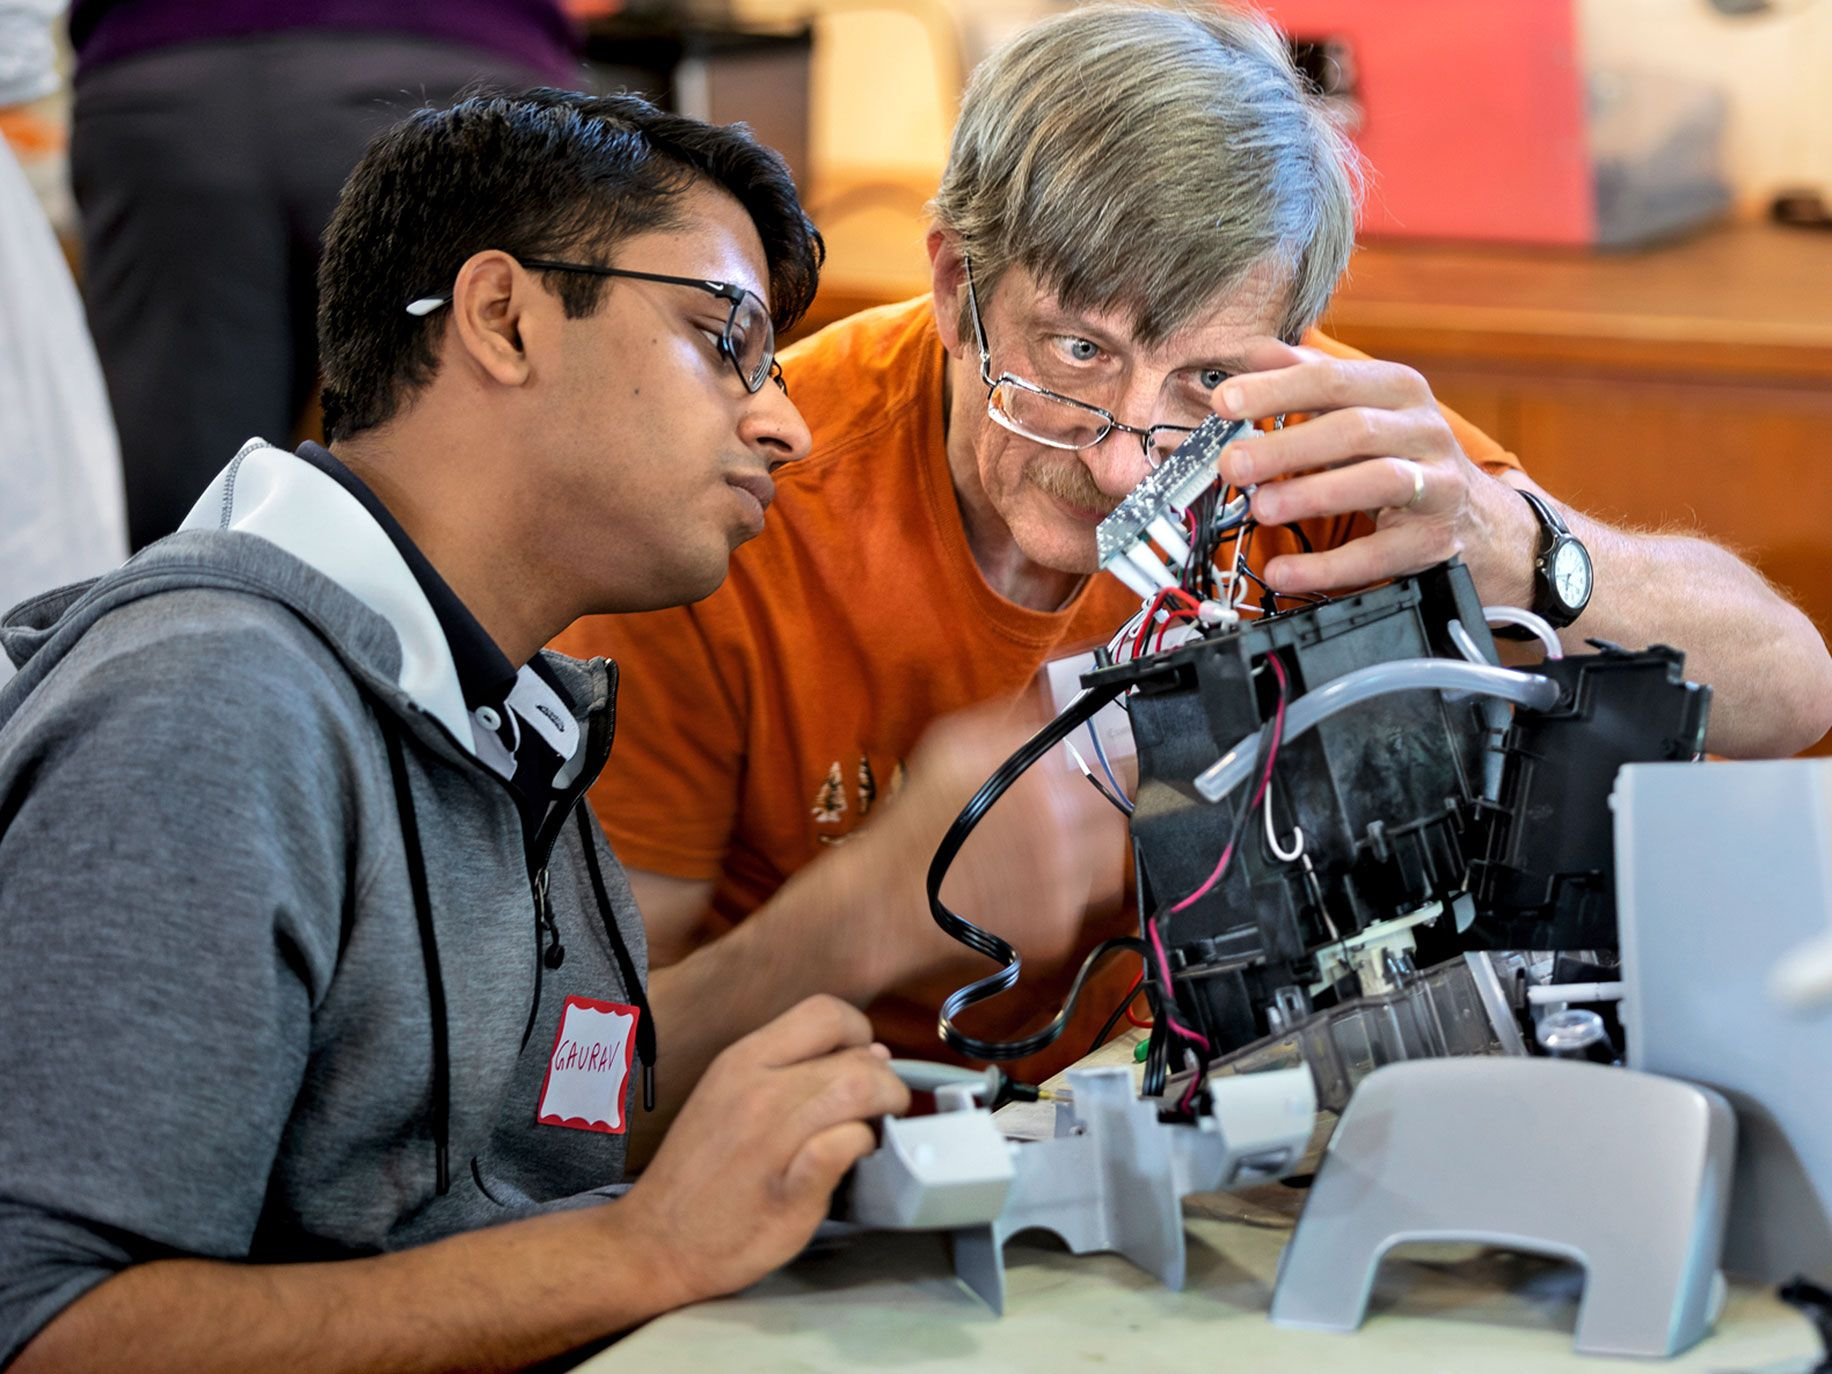 Repair Cafe veteran Joe Margevicius and apprentice Gaurav Aggarwal examine a broken piece of electronics.